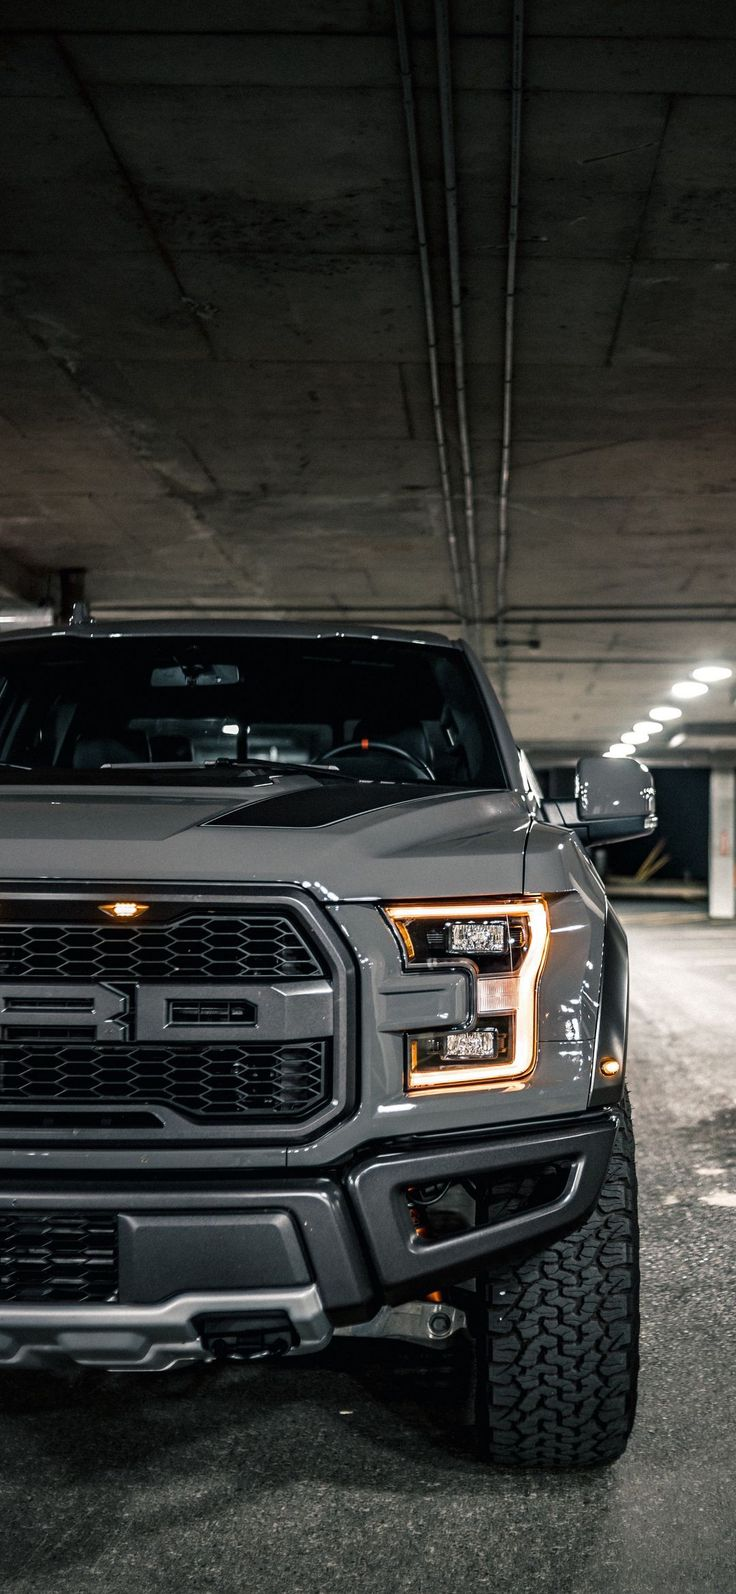 Pin By Phone Wallpaper On Cars Motorcycle Ford Raptor Ford Endeavour Ford Ranger Raptor